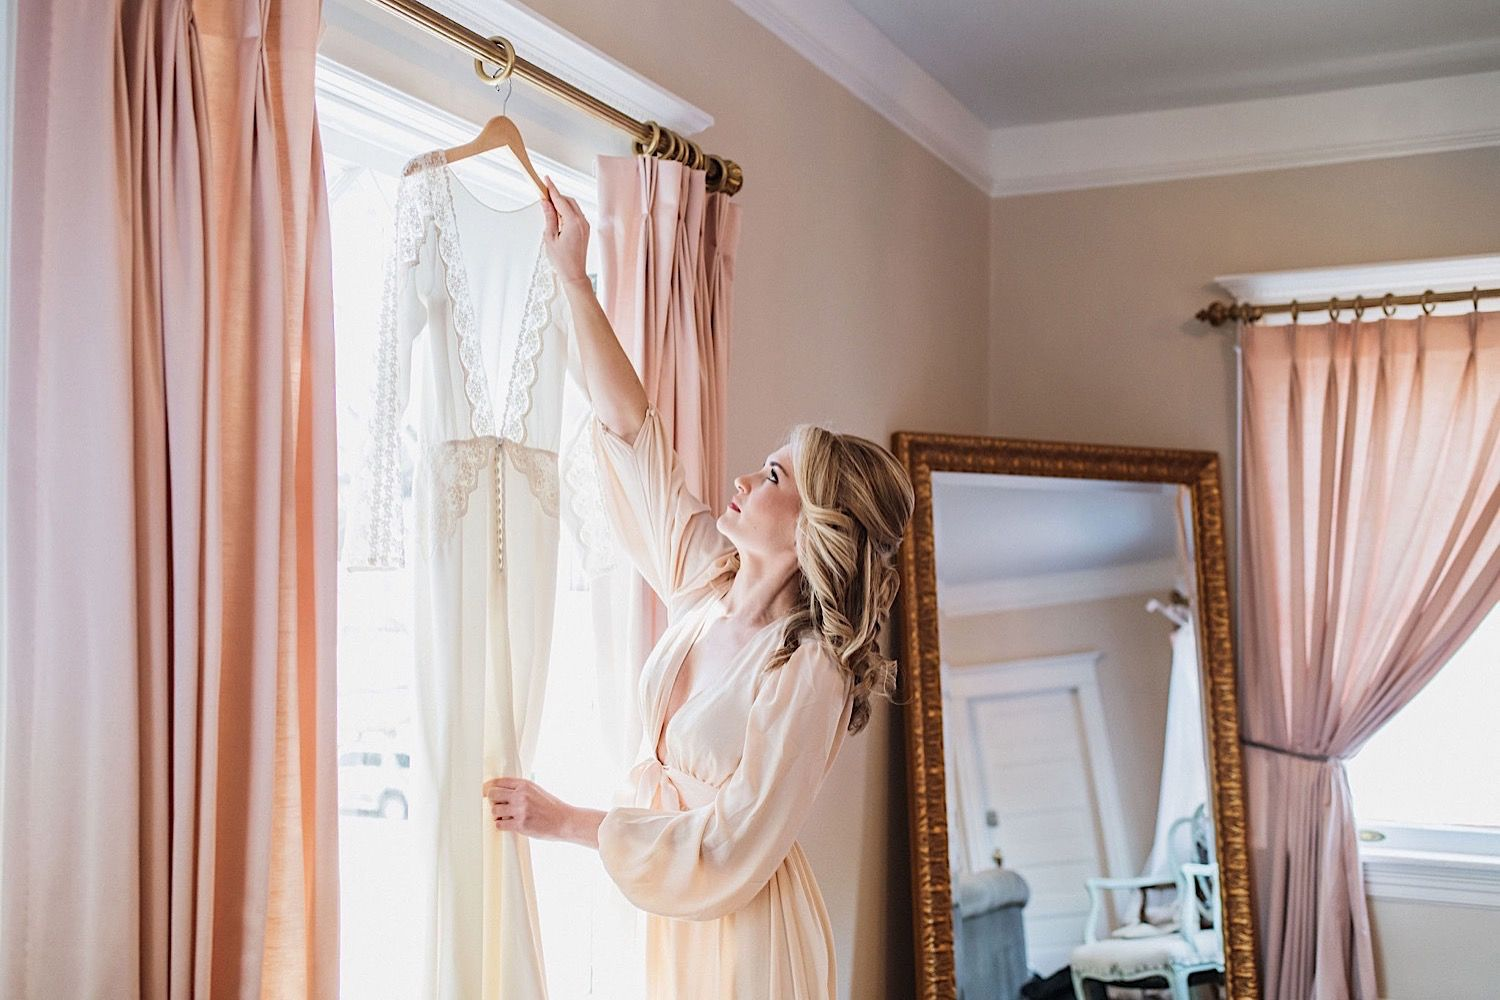 Bride in a silk robe reaching for her wedding dress